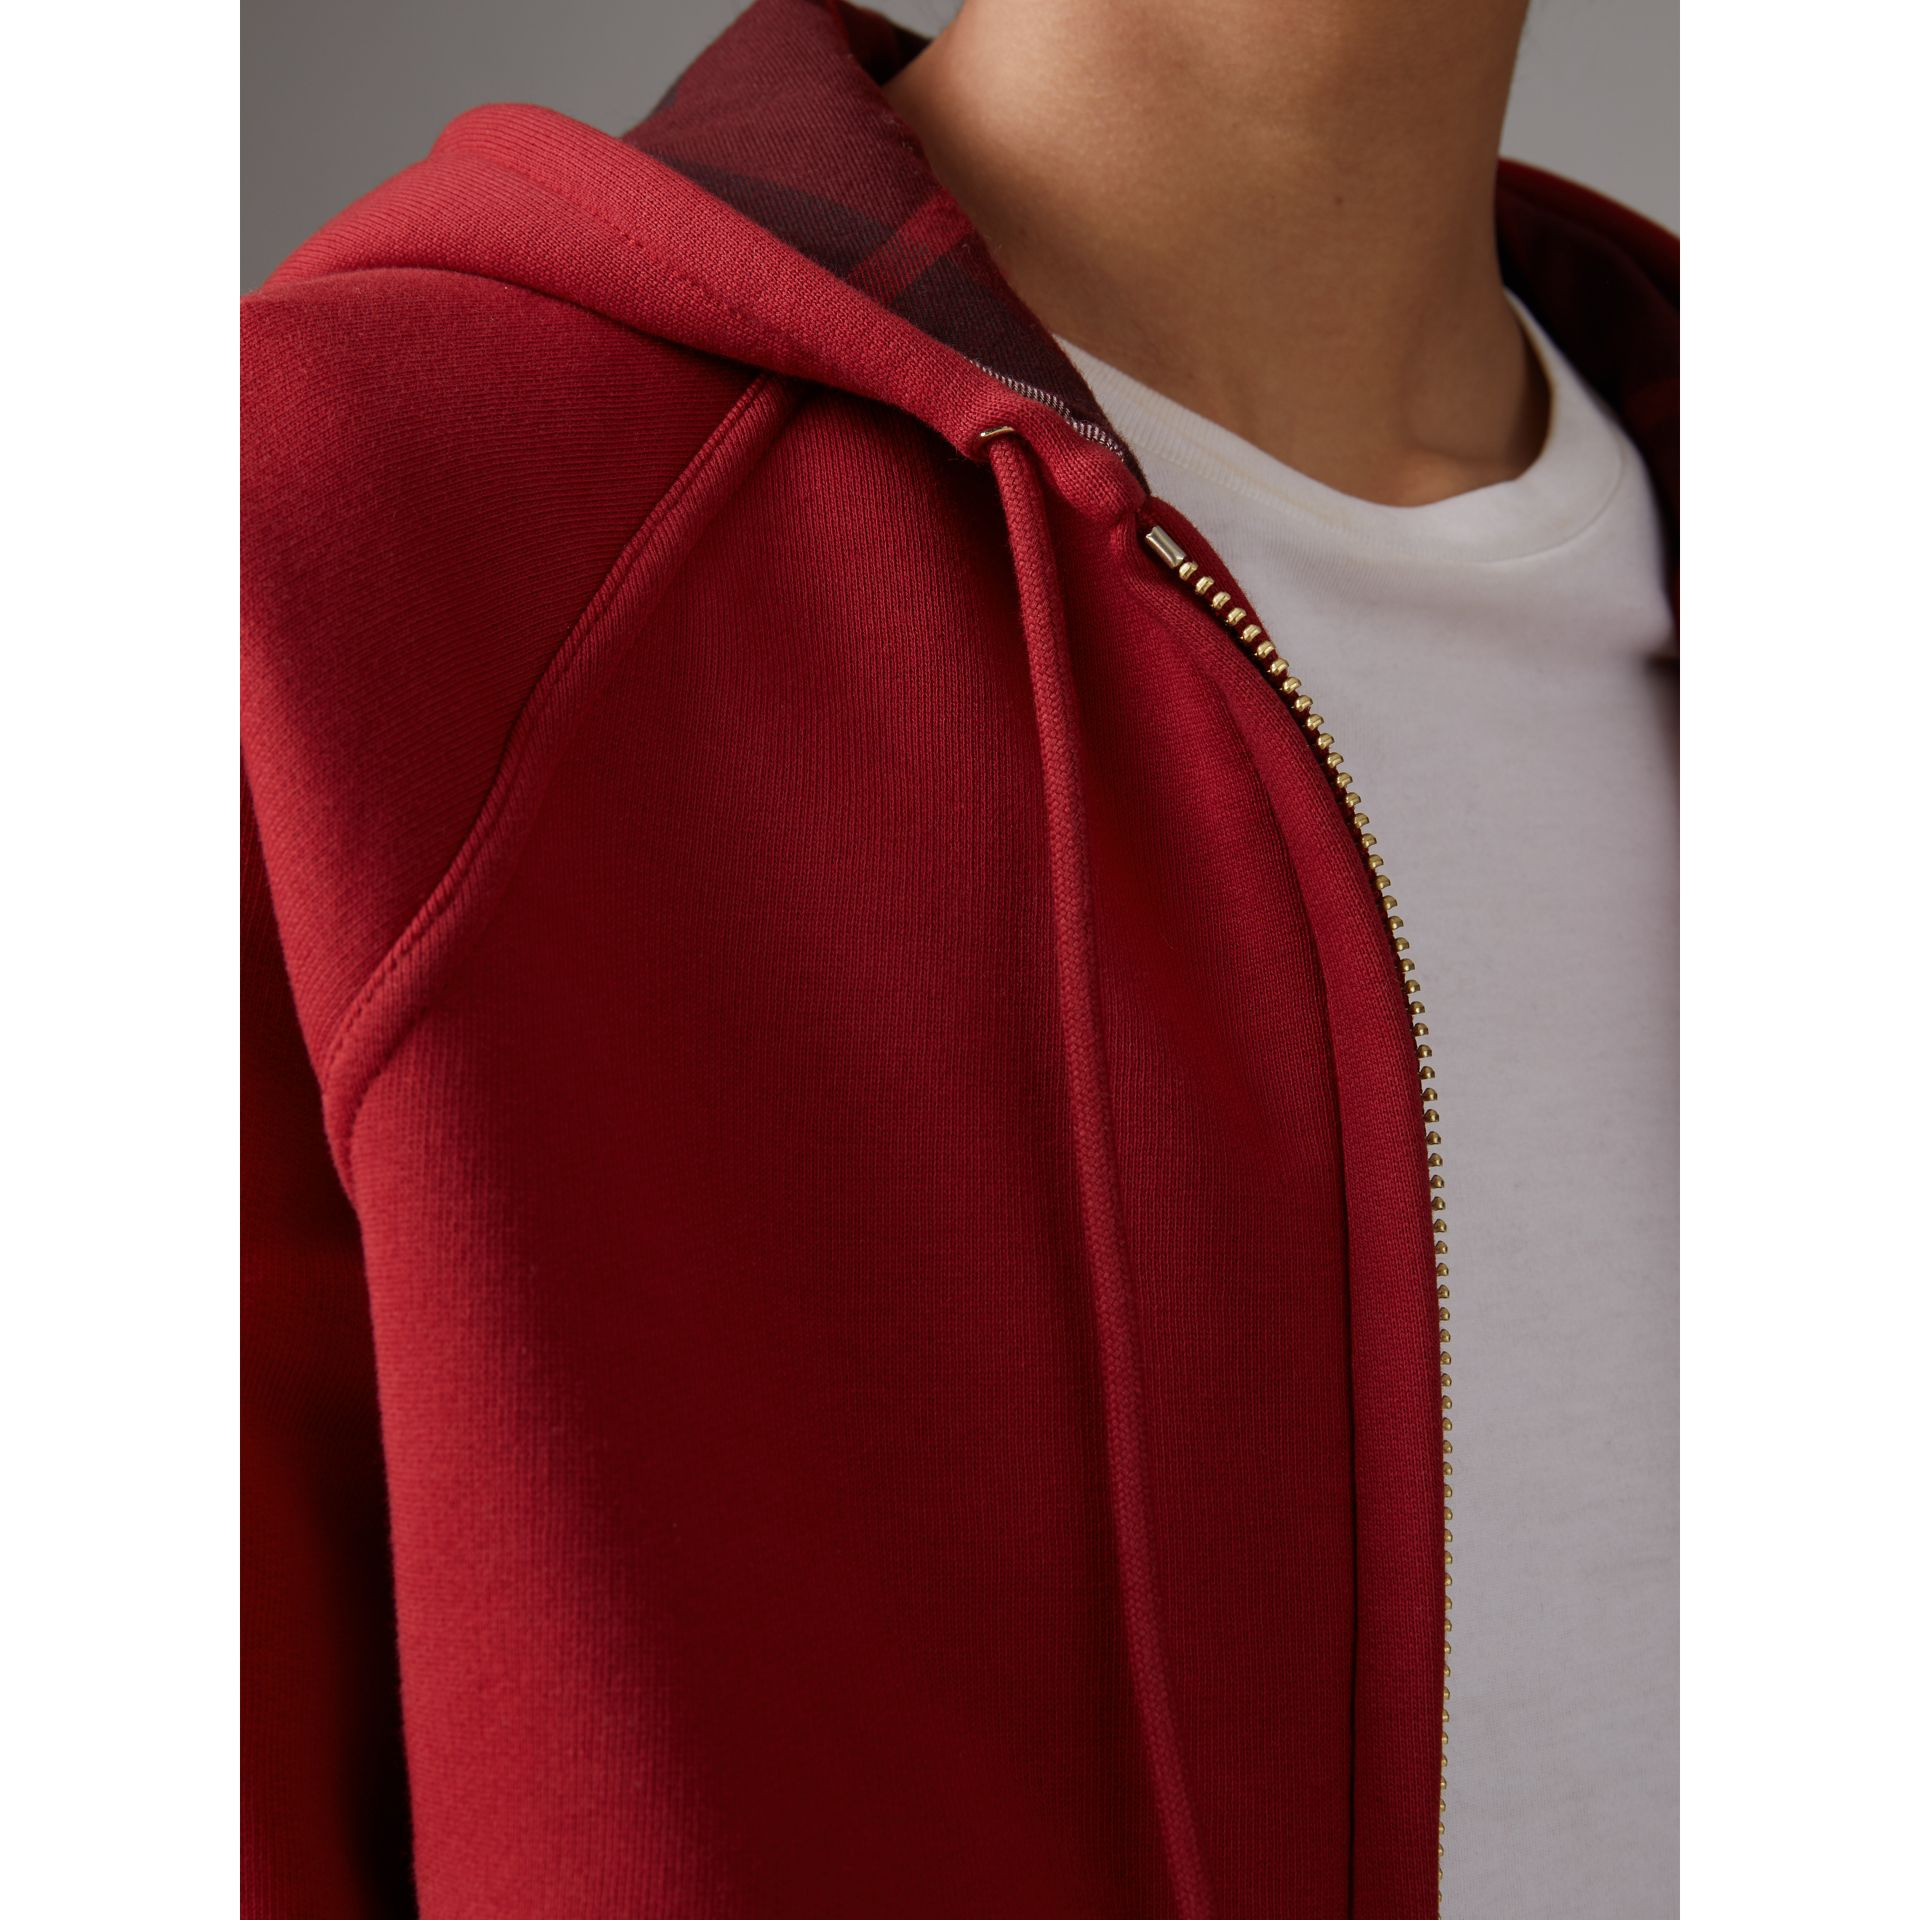 Hooded Zip-front Cotton Blend Sweatshirt in Parade Red - Women | Burberry Singapore - gallery image 2